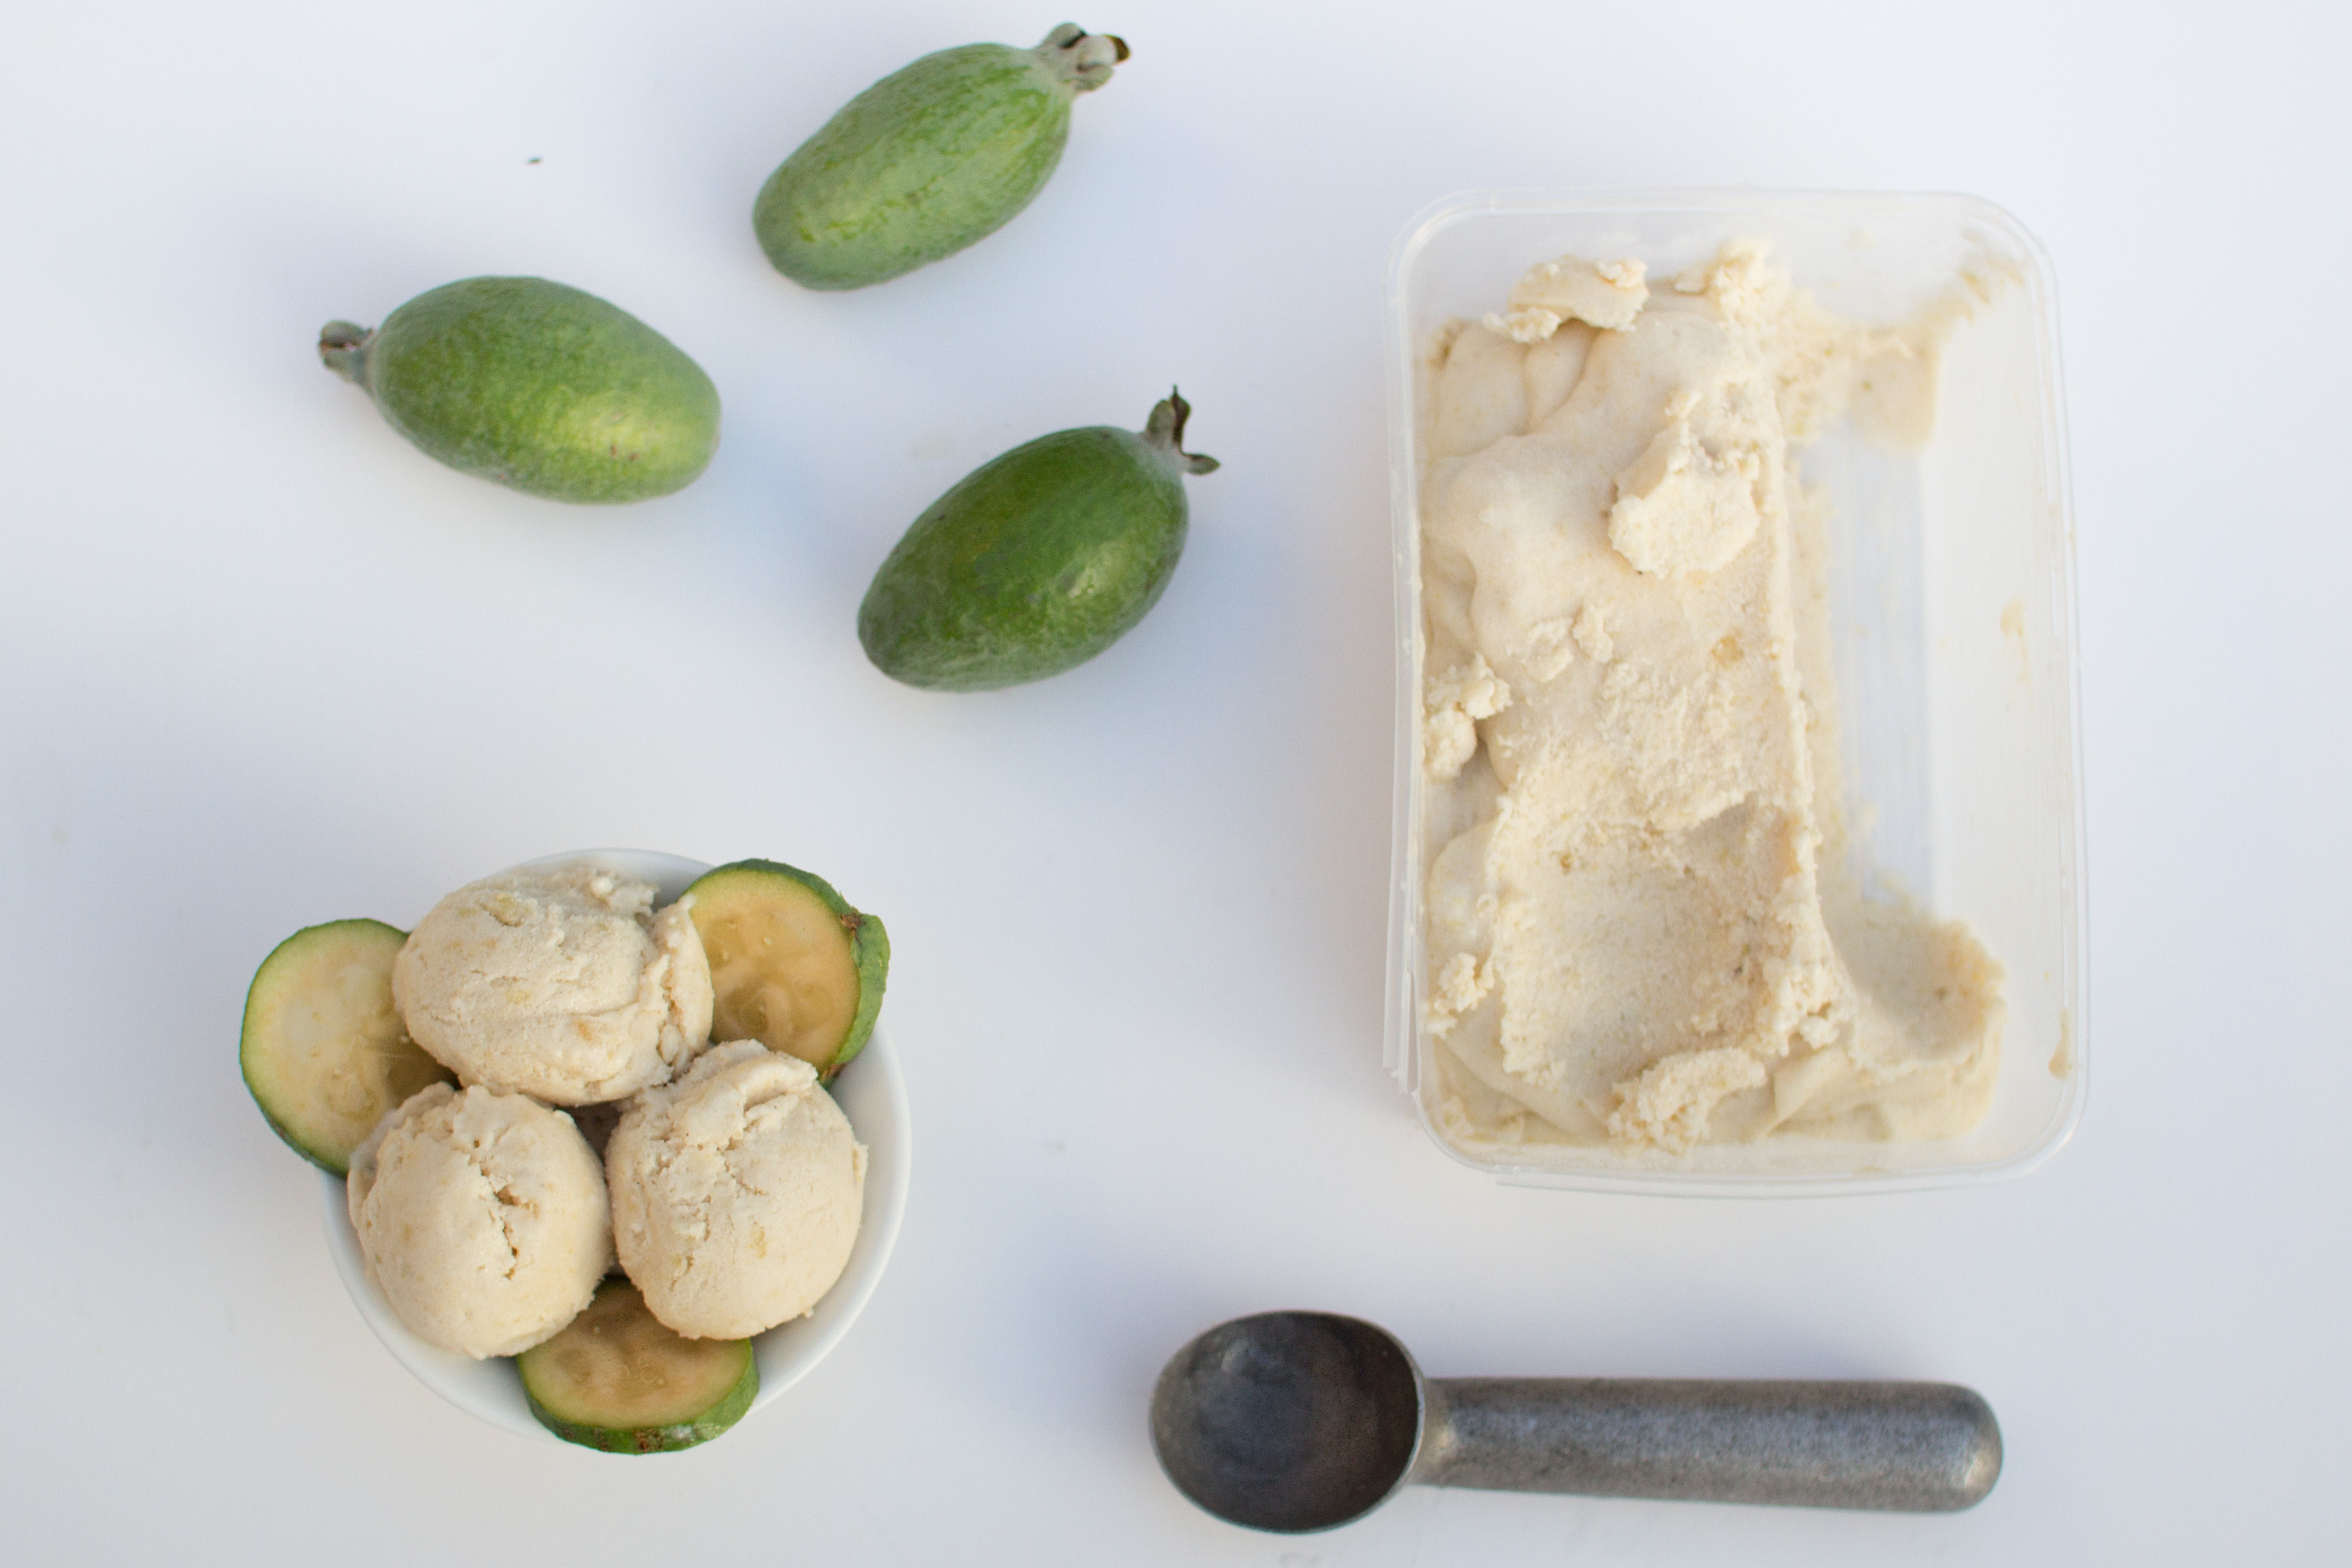 Instant feijoa ice cream